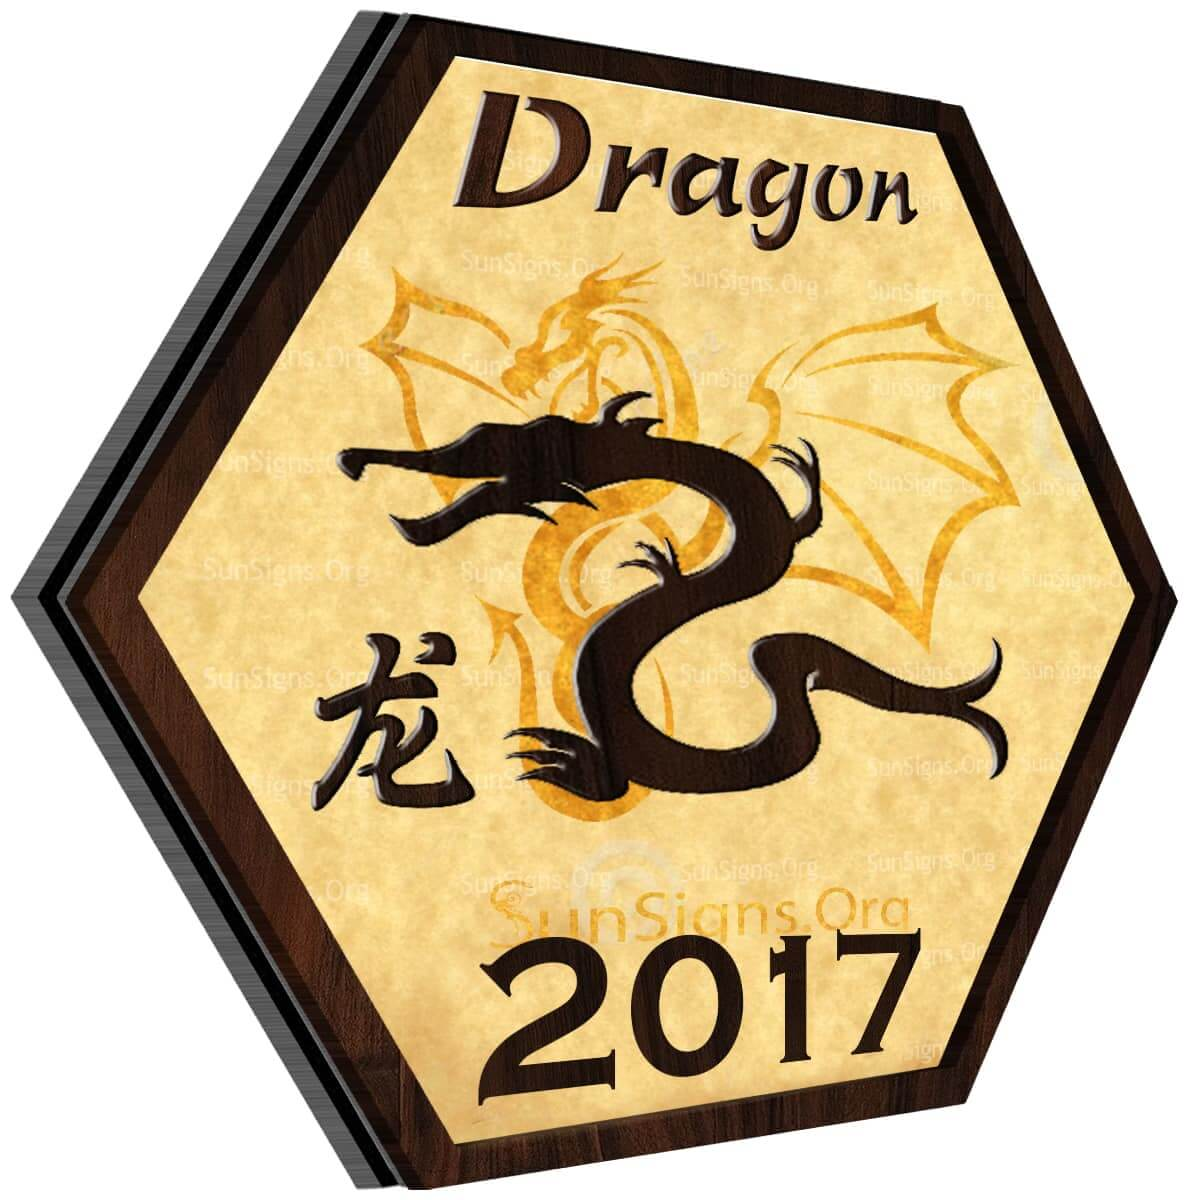 Dragon Horoscope 2017 Predictions For Love, Finance, Career, Health And Family